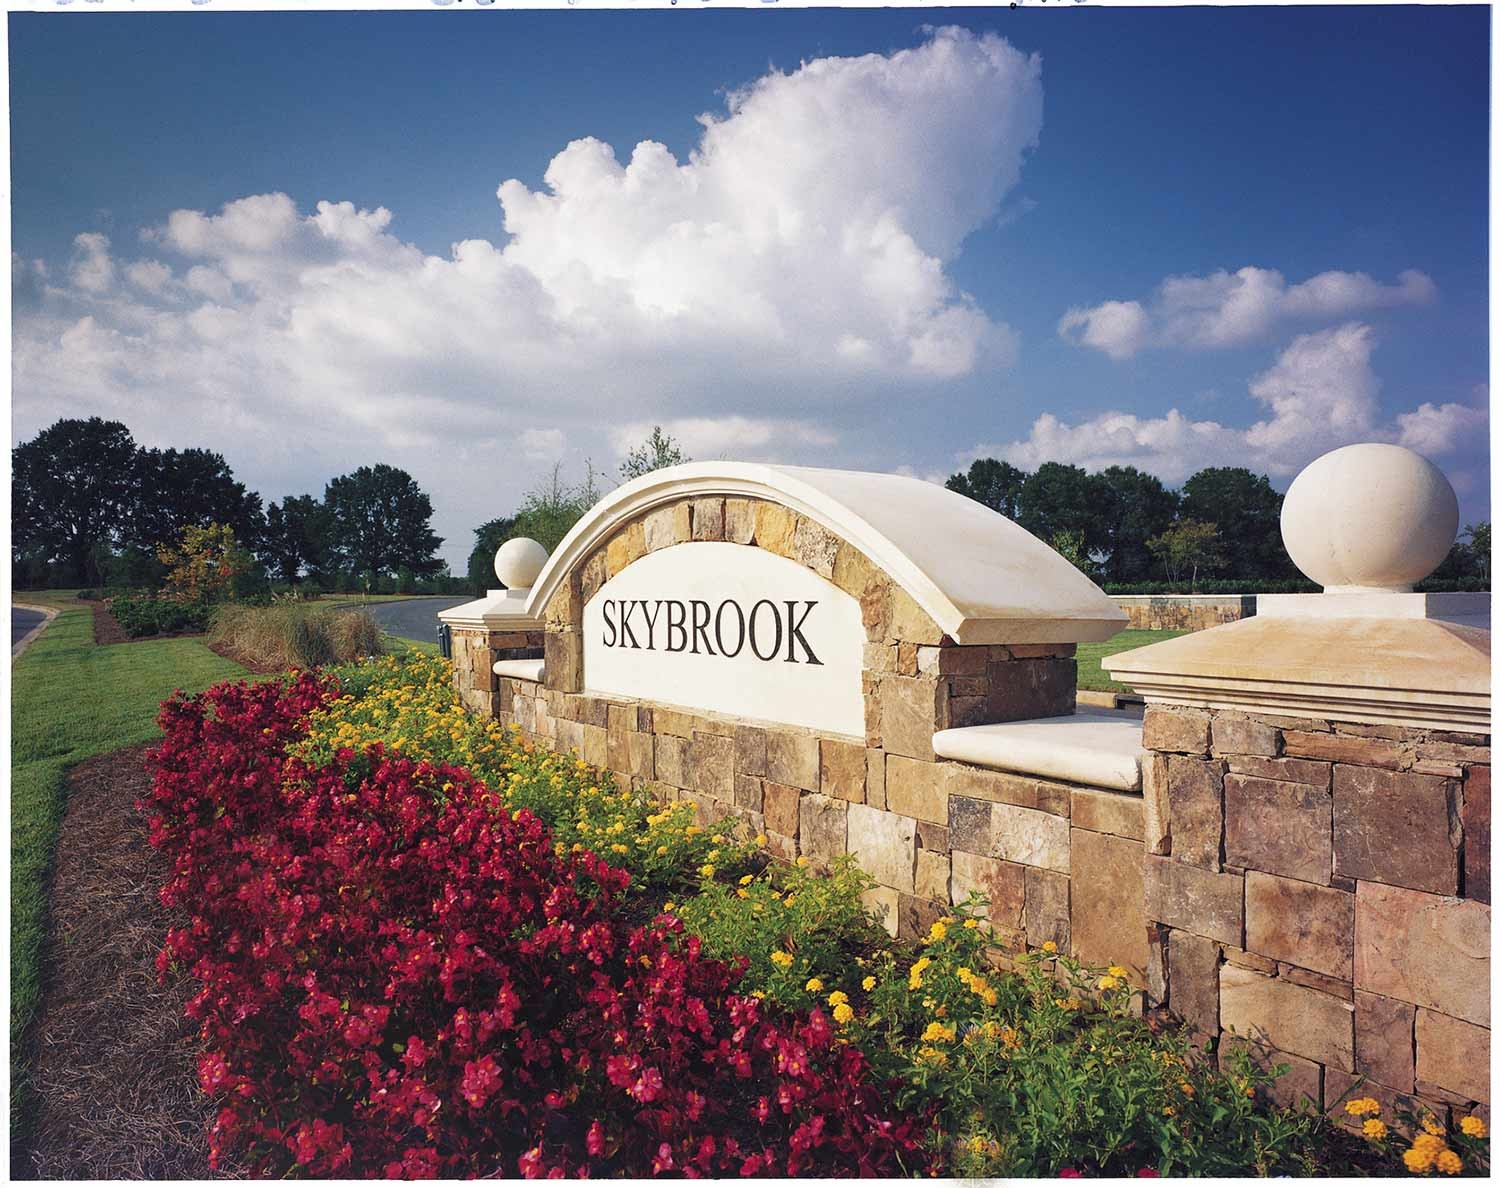 5942b700103f404f5884dab6_Skybrook-Entrance-Sign.jpg